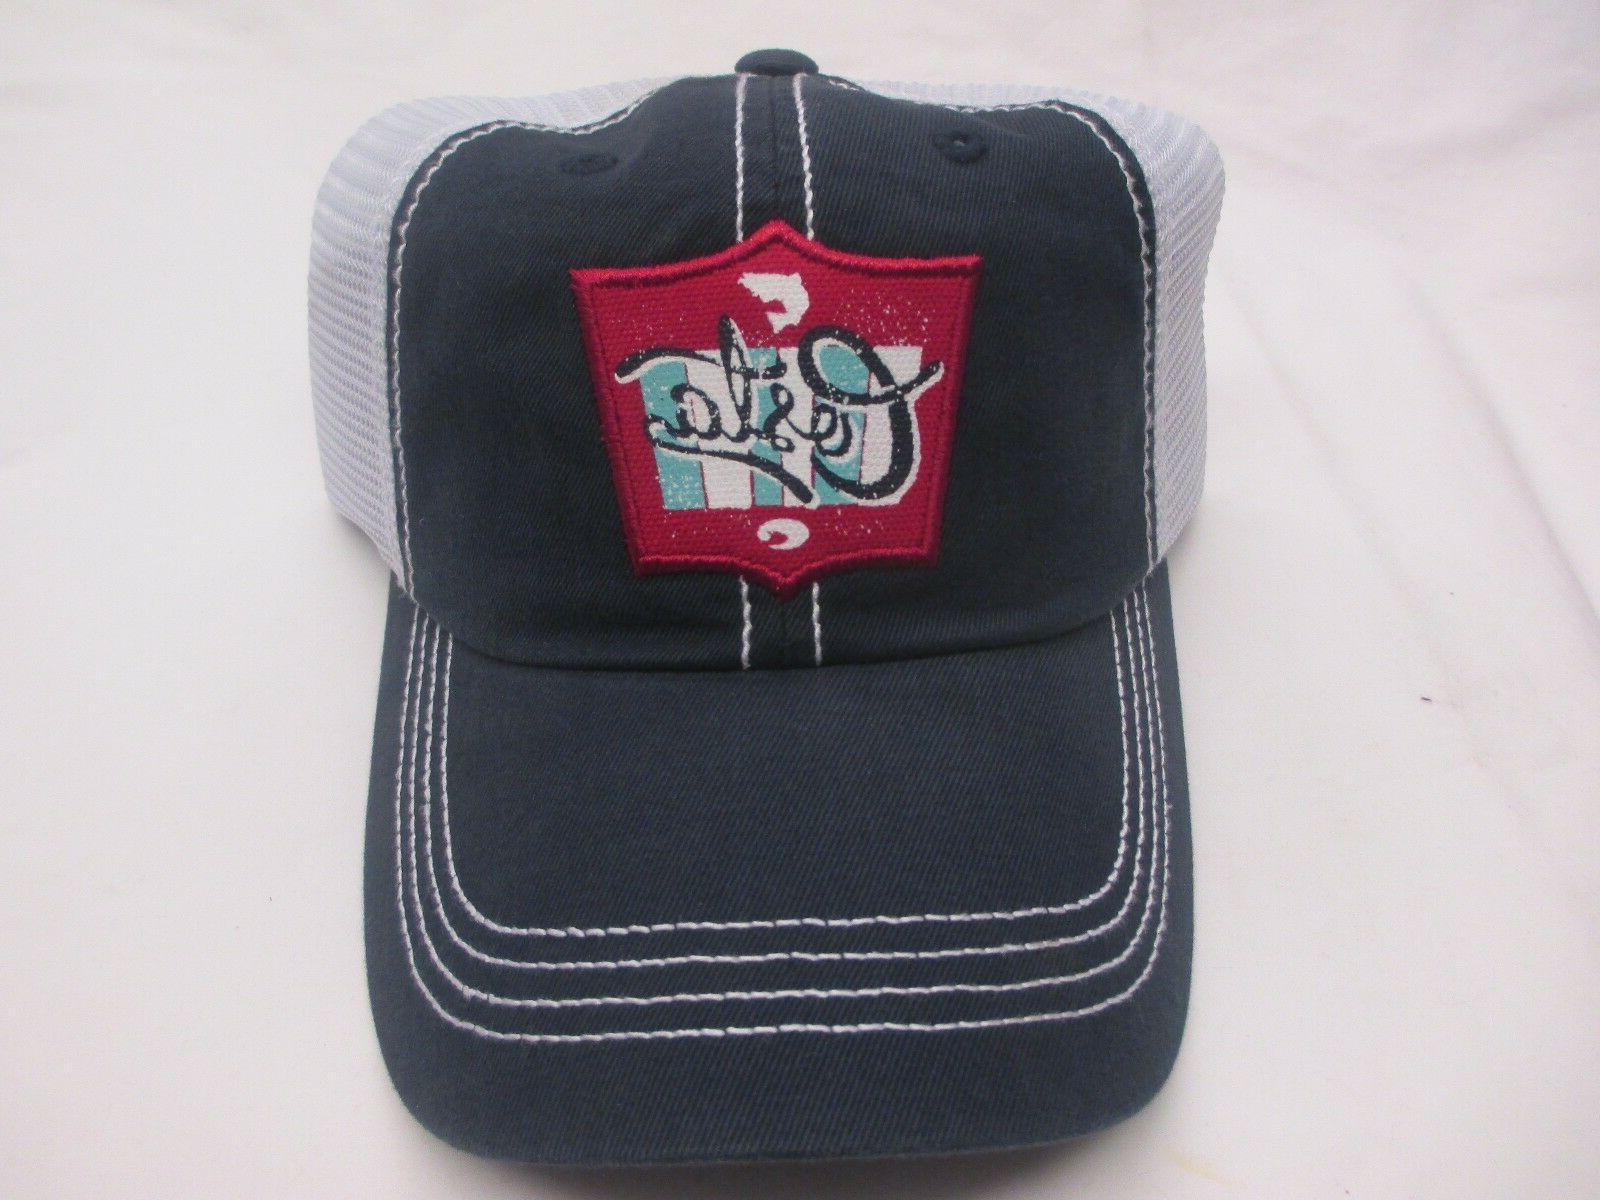 New Costa Del Mar Trucker Hat With Patch    Navy with White